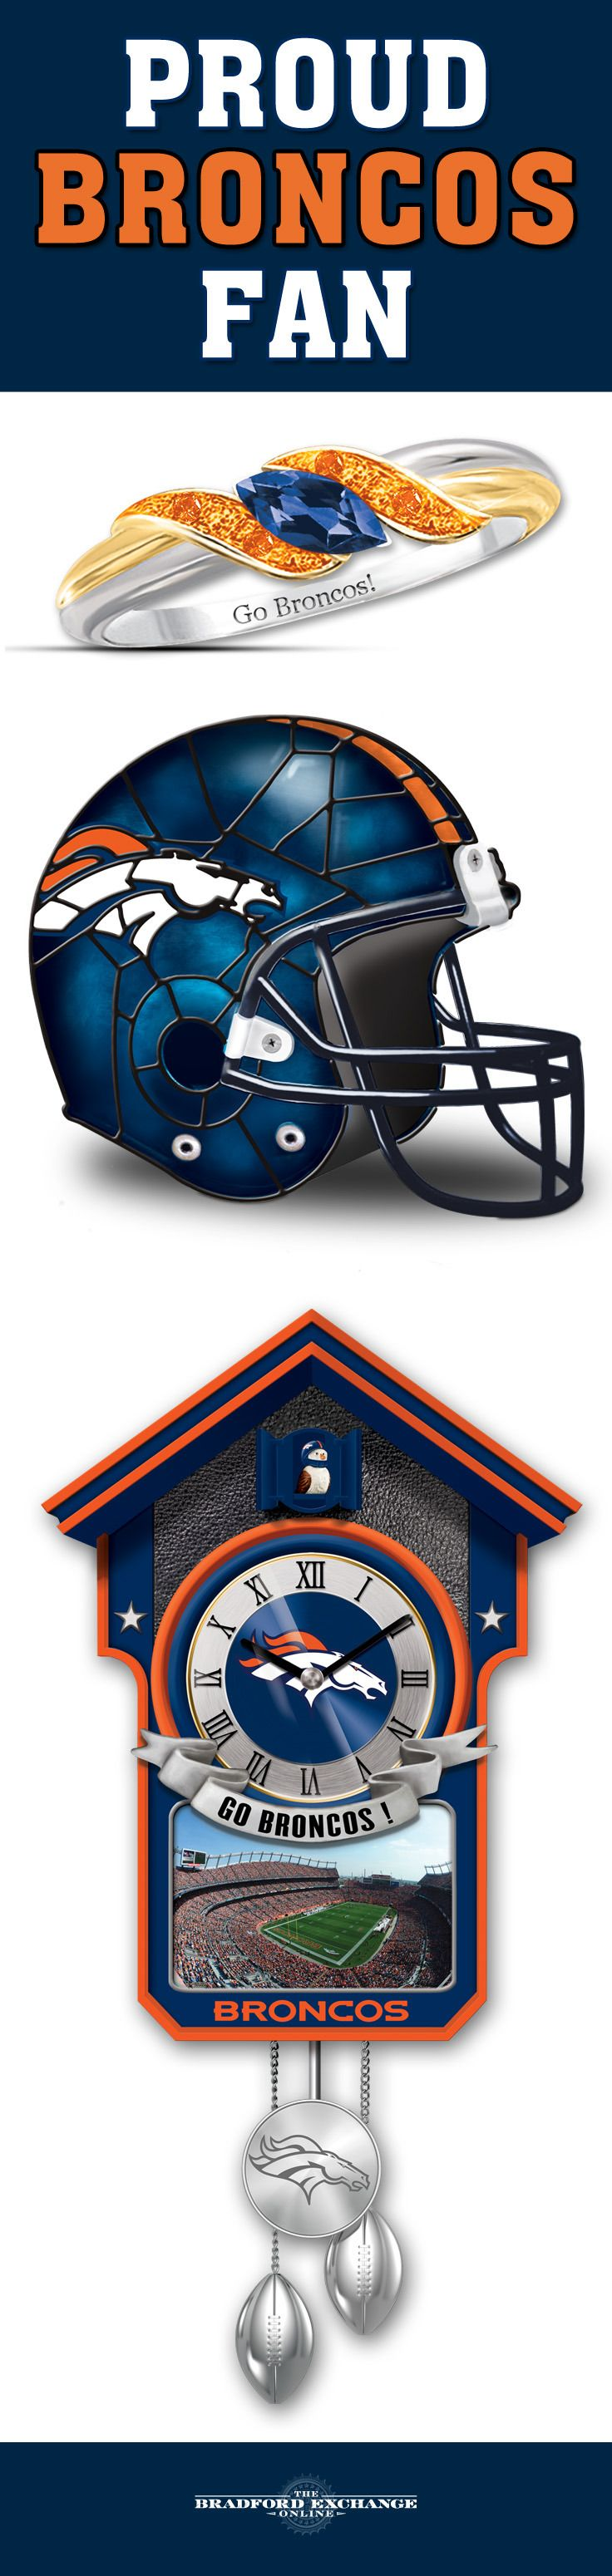 Go Broncos! It's easy to show off your team pride in whatever you do and wherever you go with our roster of NFL-licensed Denver Broncos jewelry, home decor and collectibles.